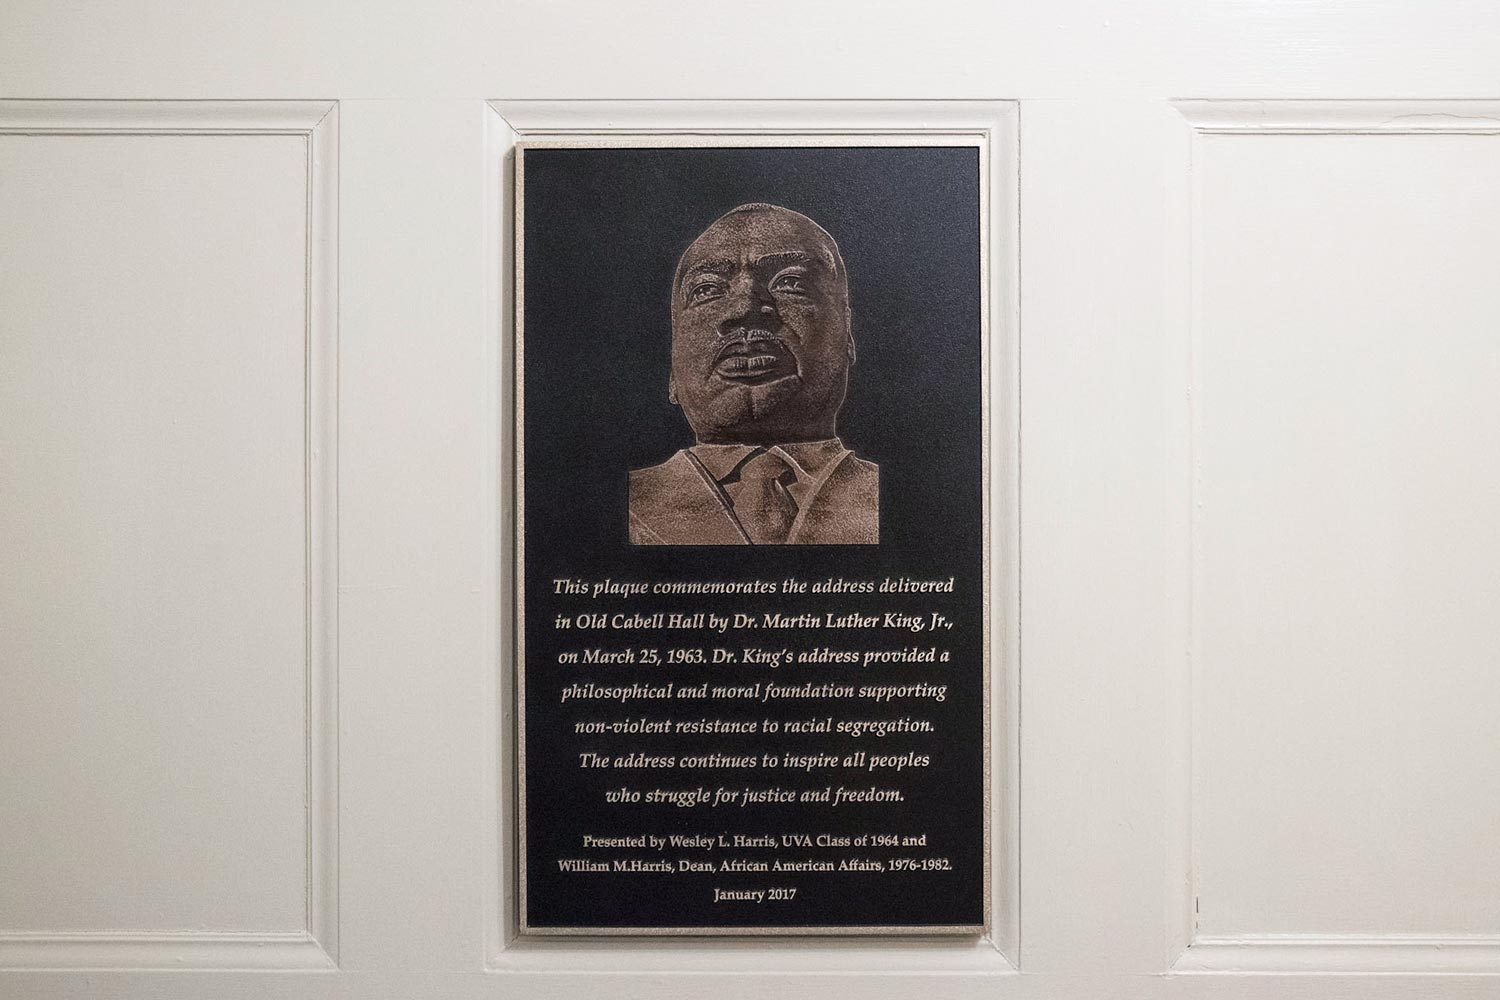 UVA recognized King's 1963 speech on Grounds in January 2017 with a plaque in Old Cabell Hall, a gift from brothers Wesley and William Harris.